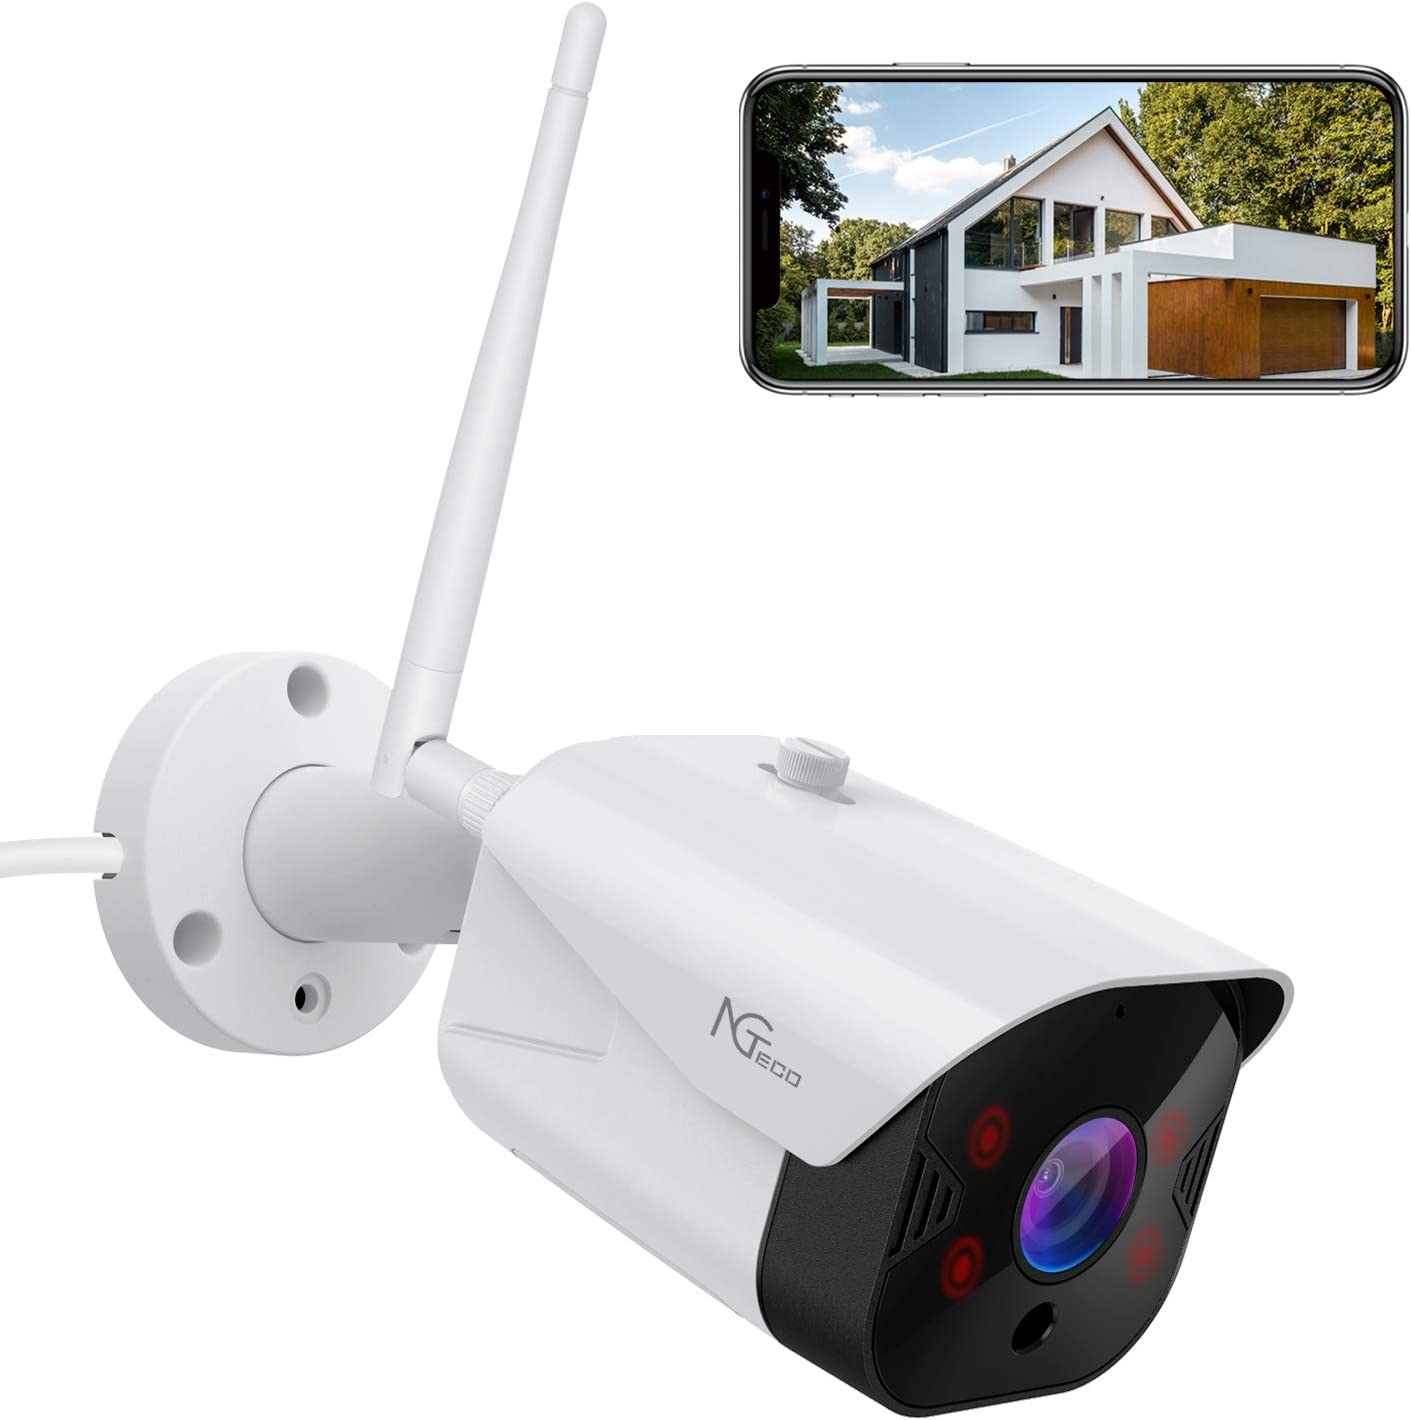 Security Camera Outdoor, 1080PHD 2.4G WiFi Wireless Cameras for Home Security - Smart Surveillance Cam Waterproof with Night Vision/2 Way Audio/Motion Detection/SD Cloud Storage/App Remote